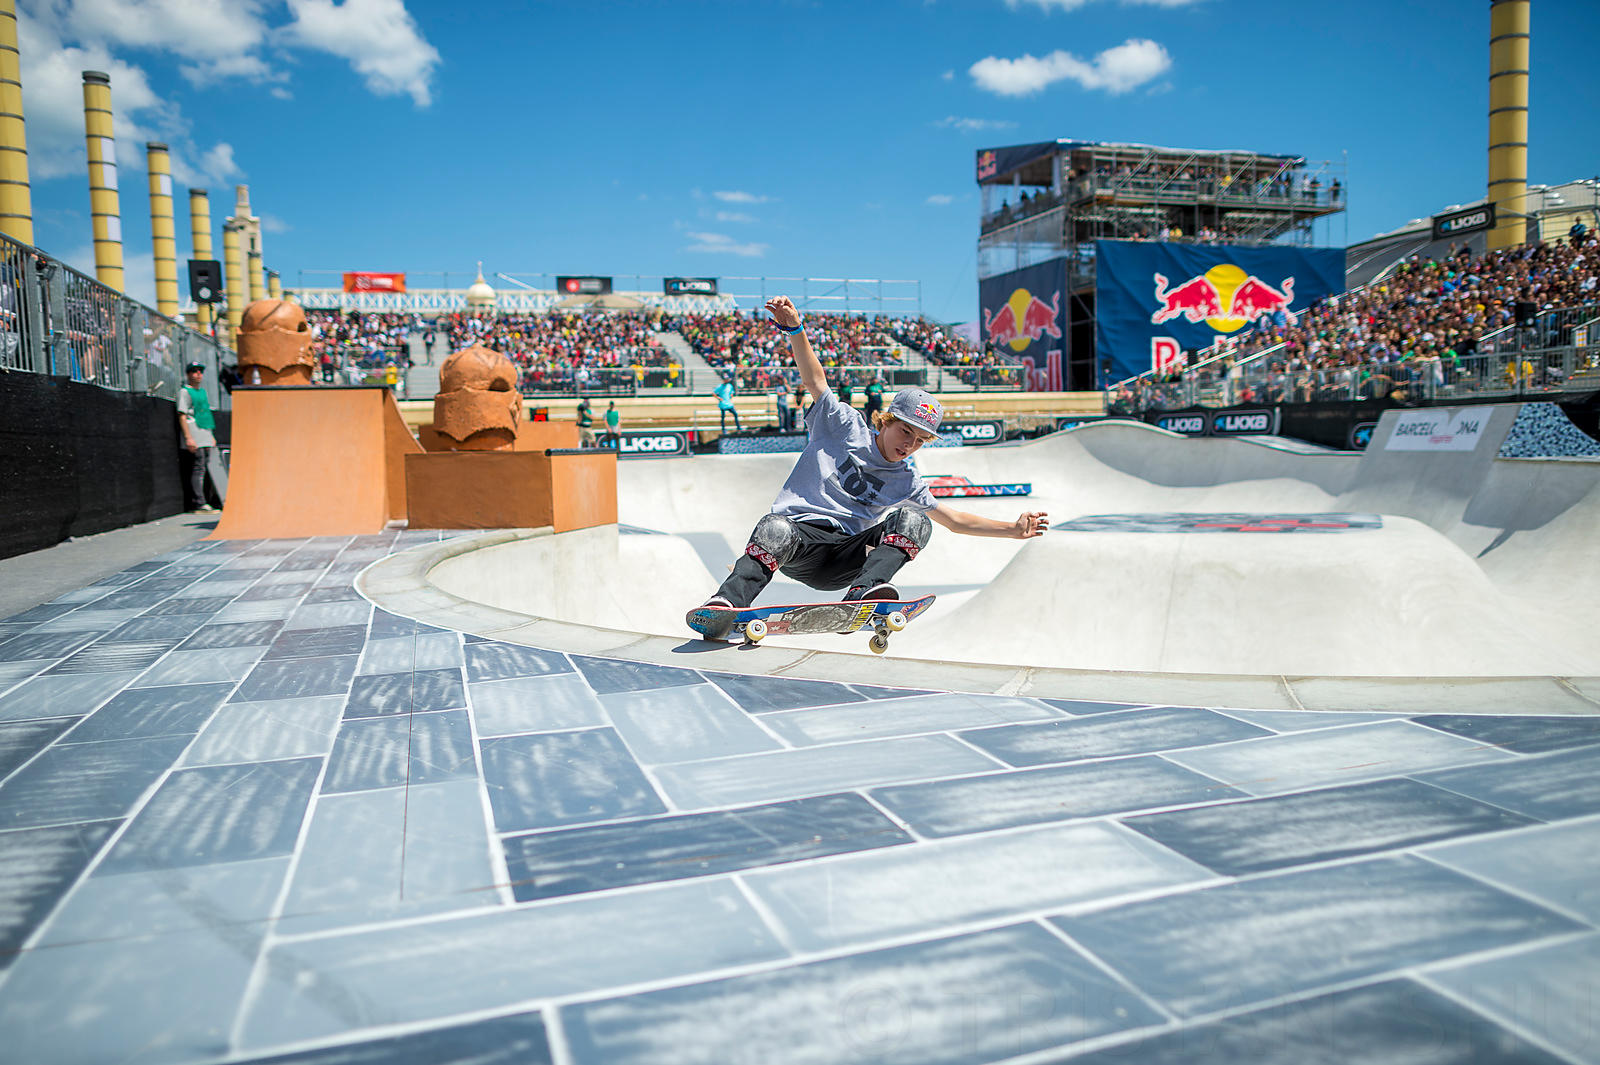 X Games Barcelona 2013 - May 19, 2013